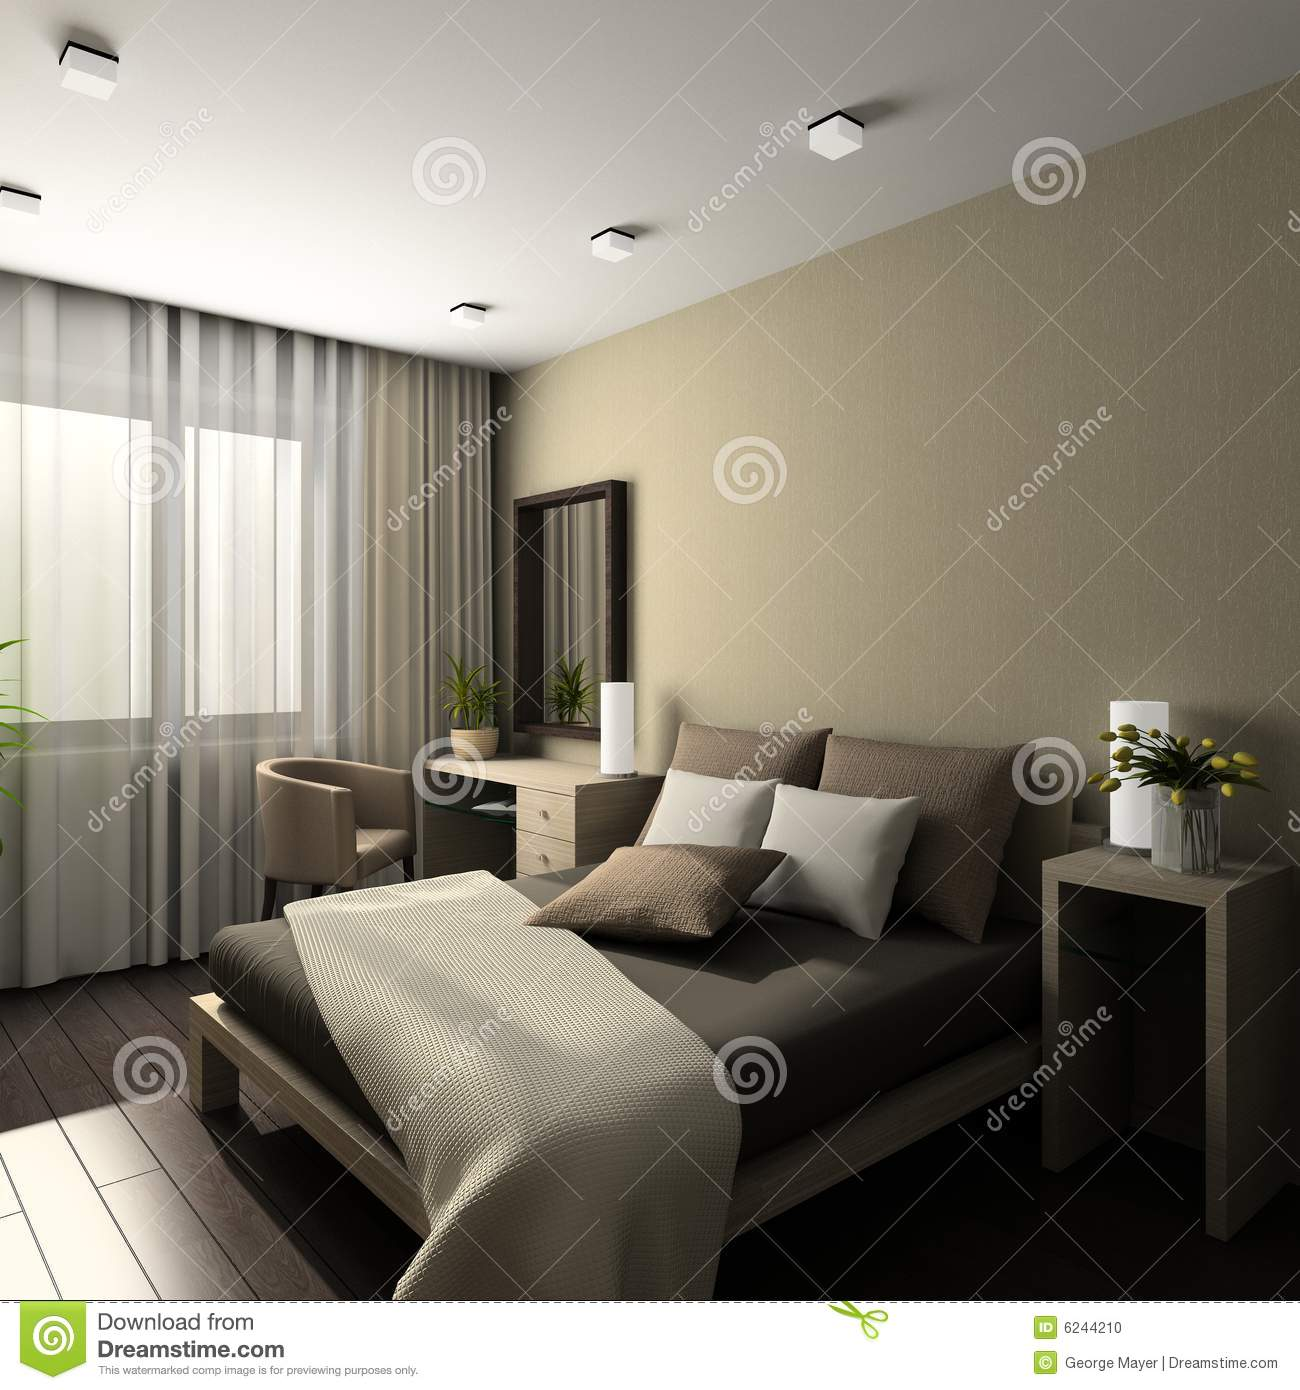 modern bedroom interior 3d render modern interior 3d render stock photo image of lodging 923